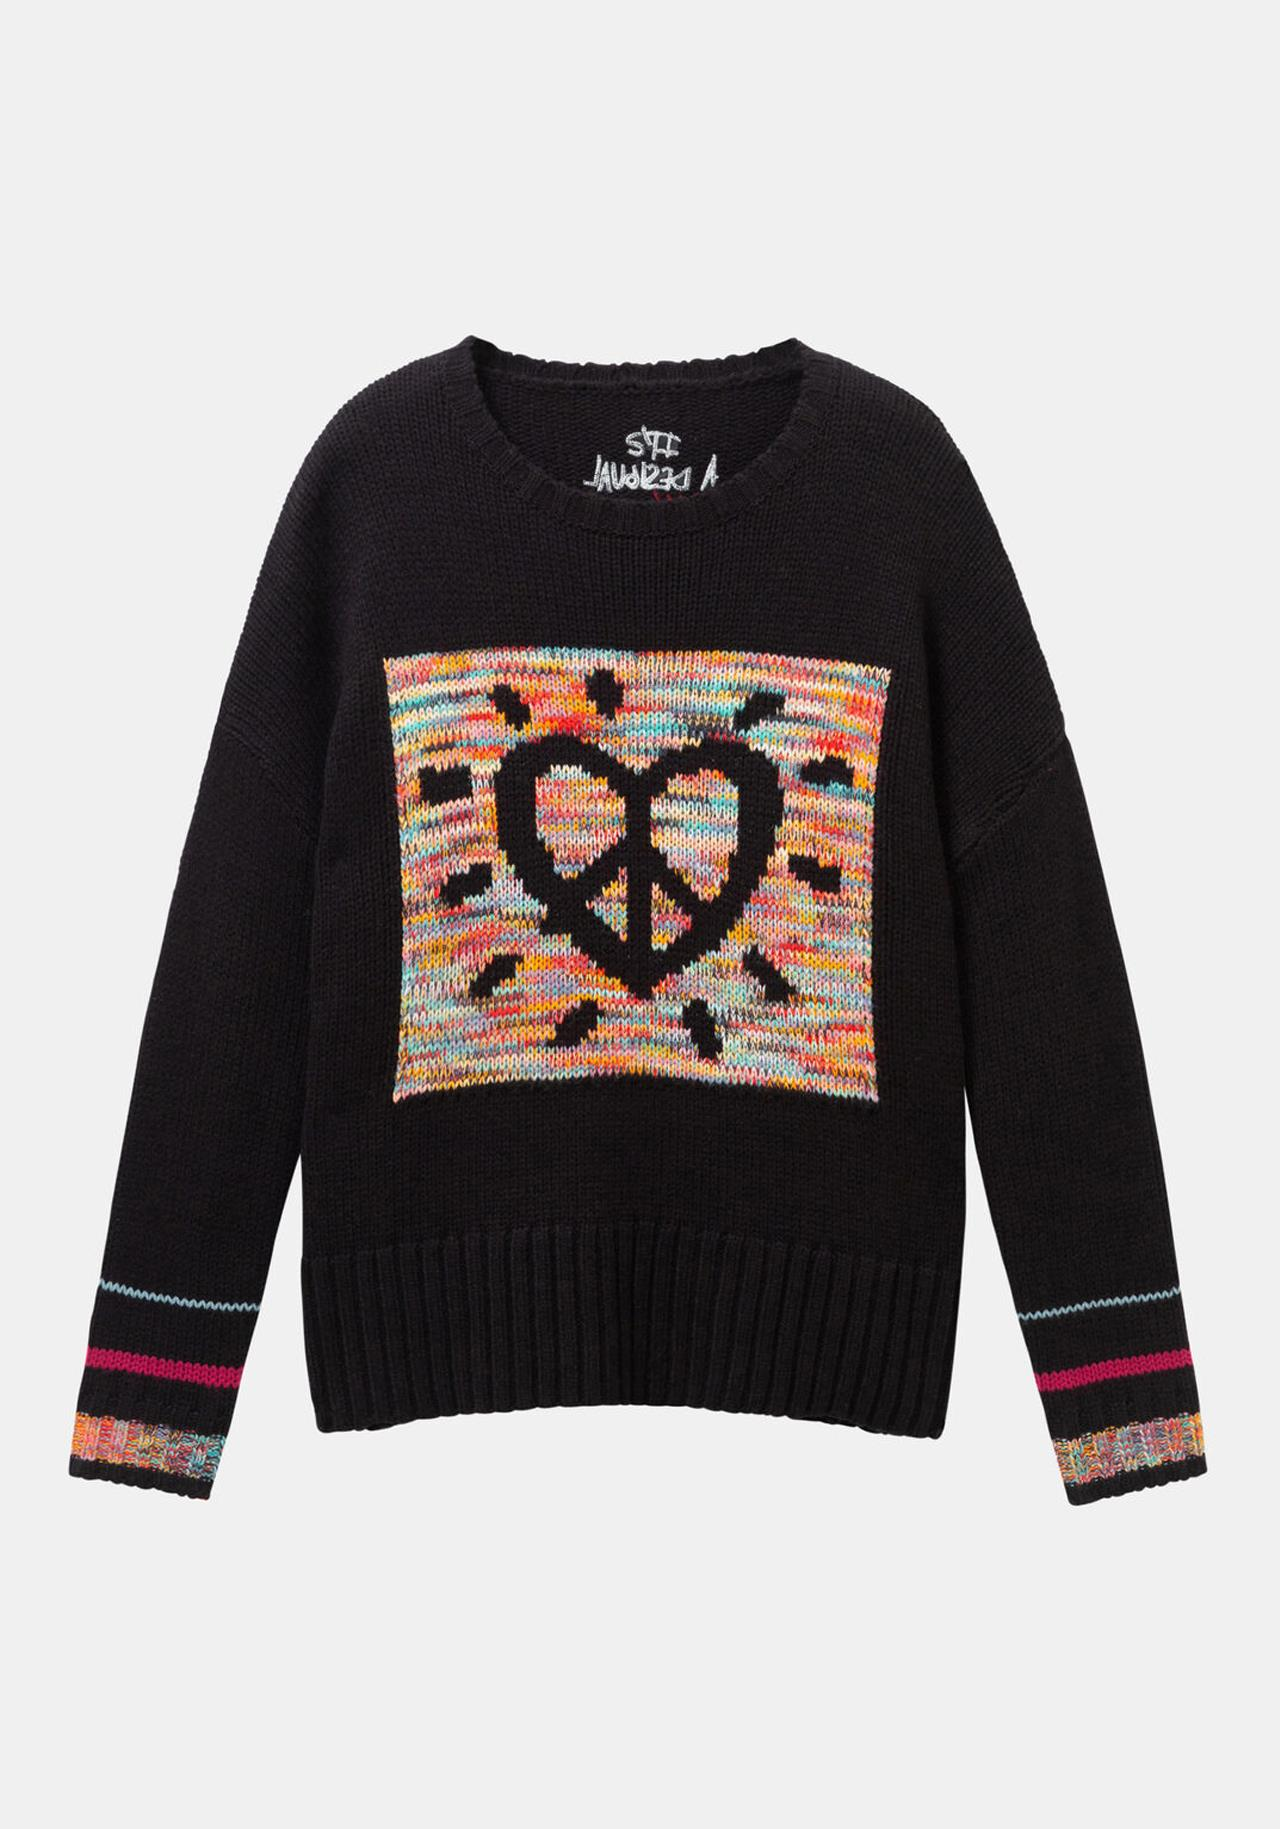 DESIGUAL JERSEY BLACK FRIDAY